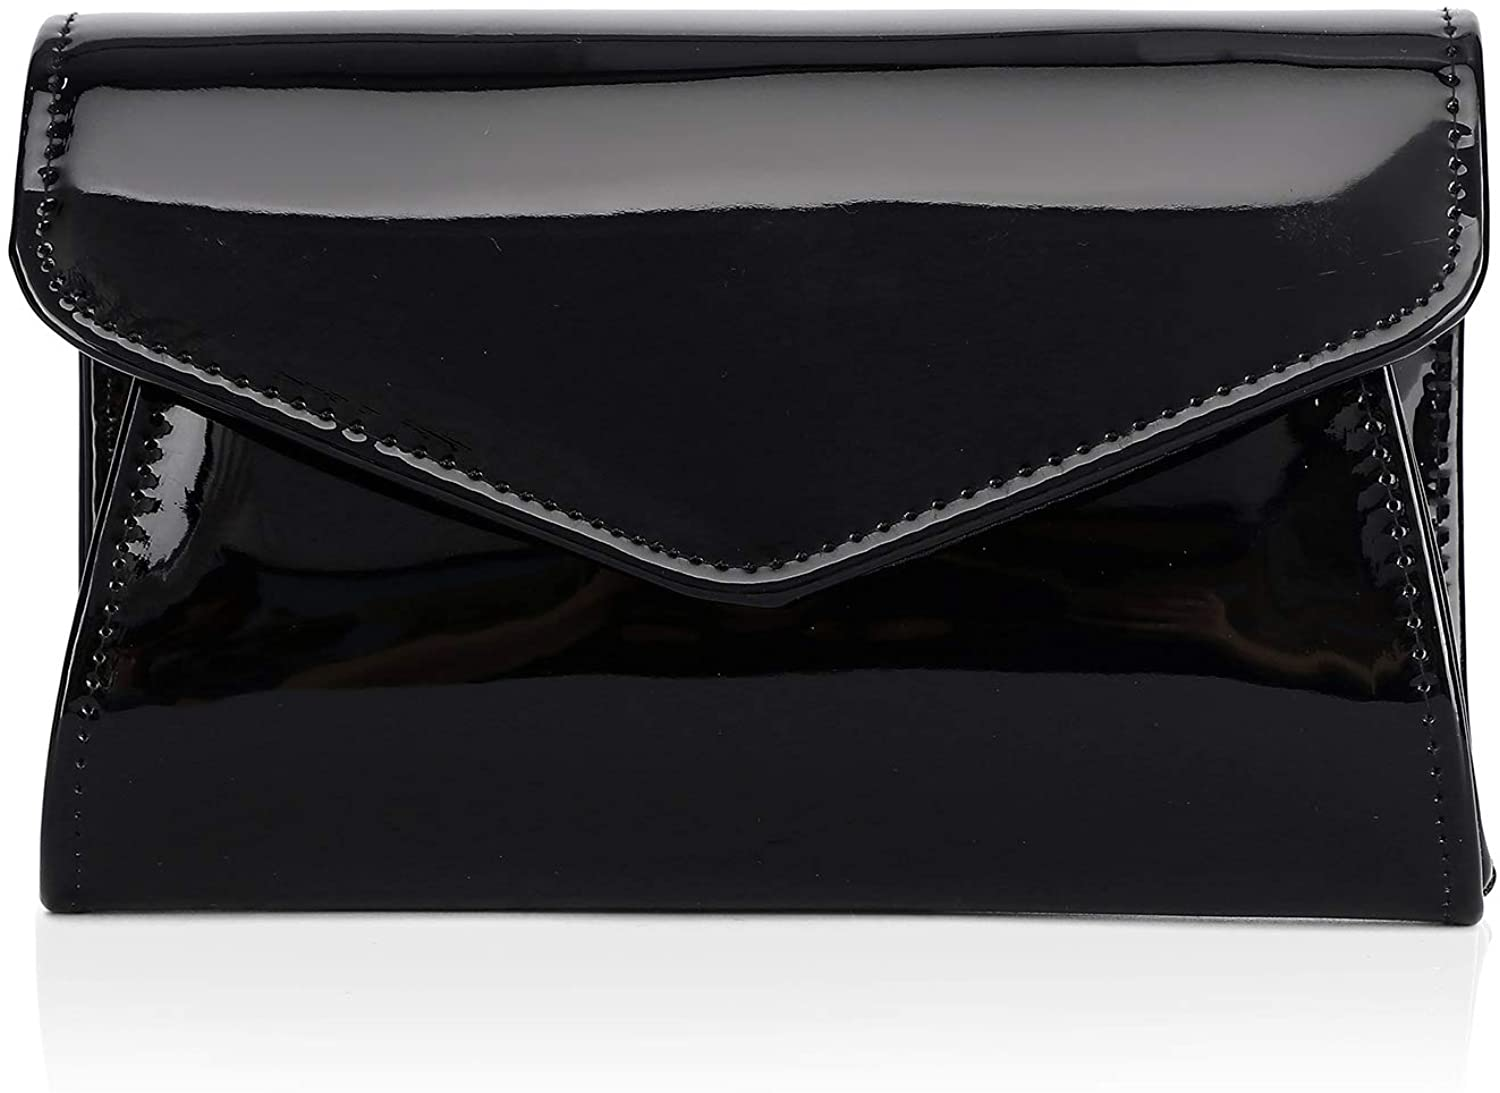 Labair Patent Leather Clutch Bag Glossy Candy Evening Bag Classic Shiny Purses for Women Solid Color,Small.